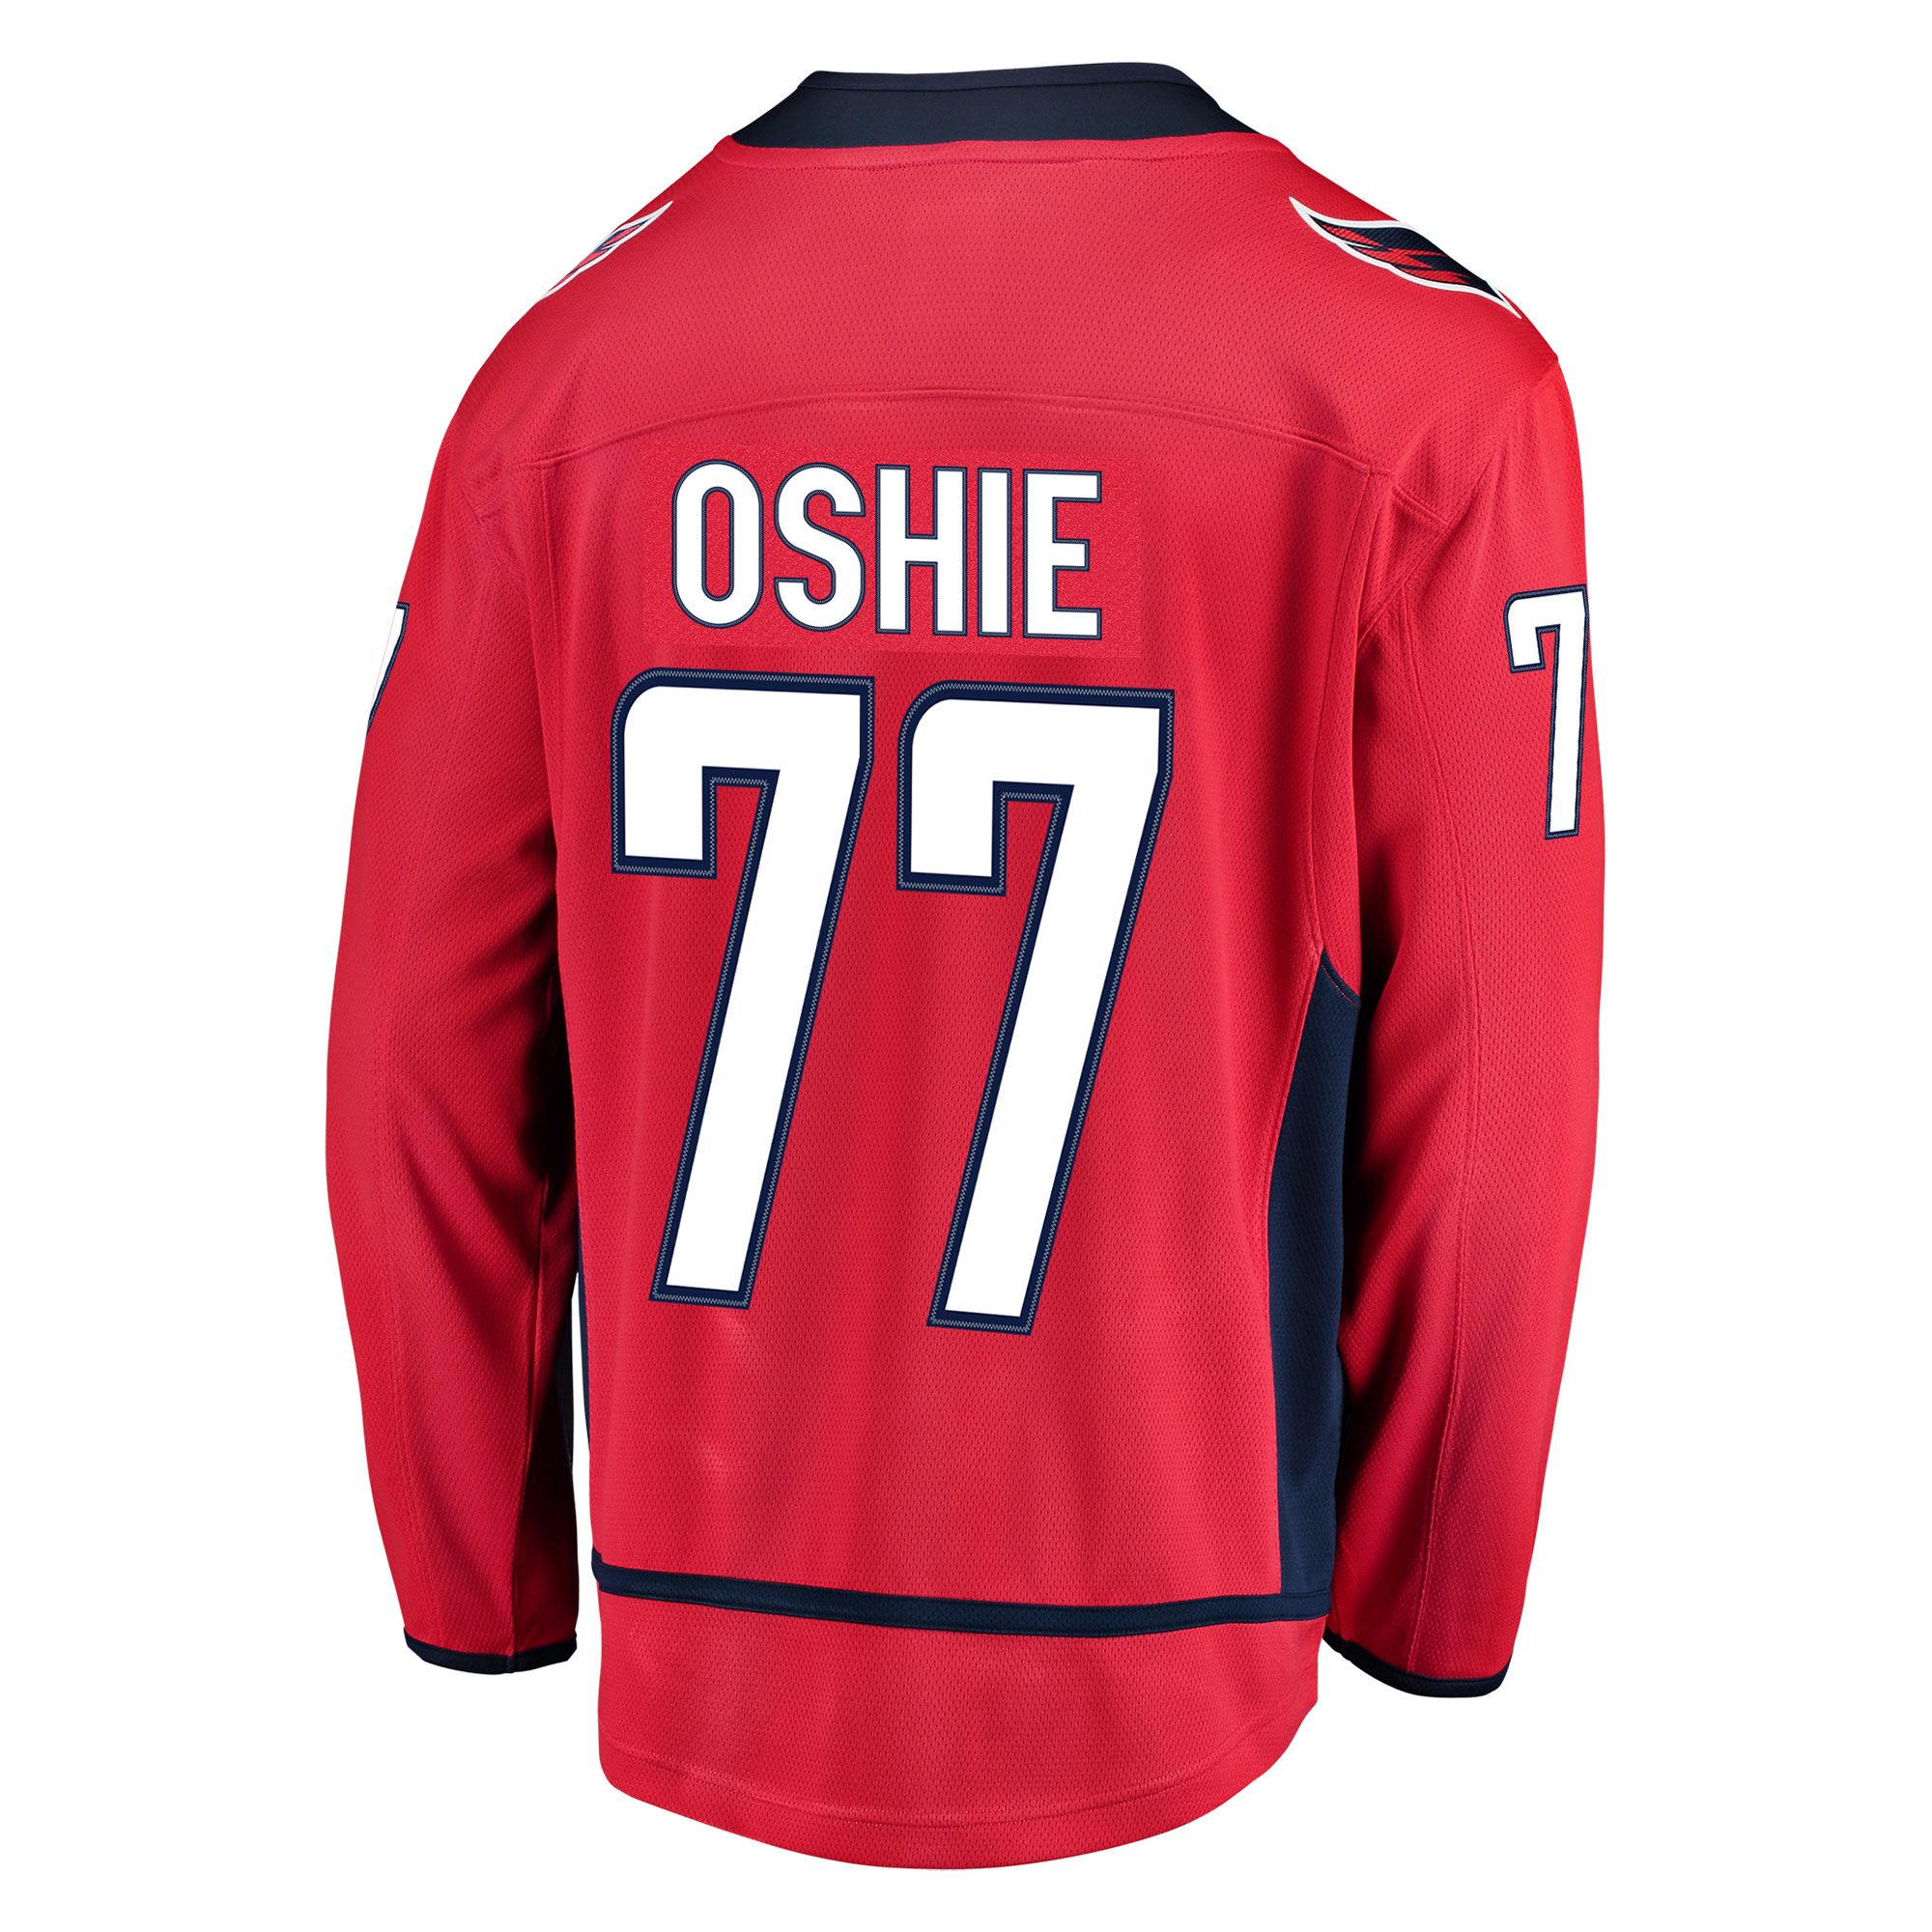 TJ Oshie Washington Capitals 2018 Stanley Cup Champions Home Breakaway  Player Jersey - Red - Walmart.com 7ac0c162434